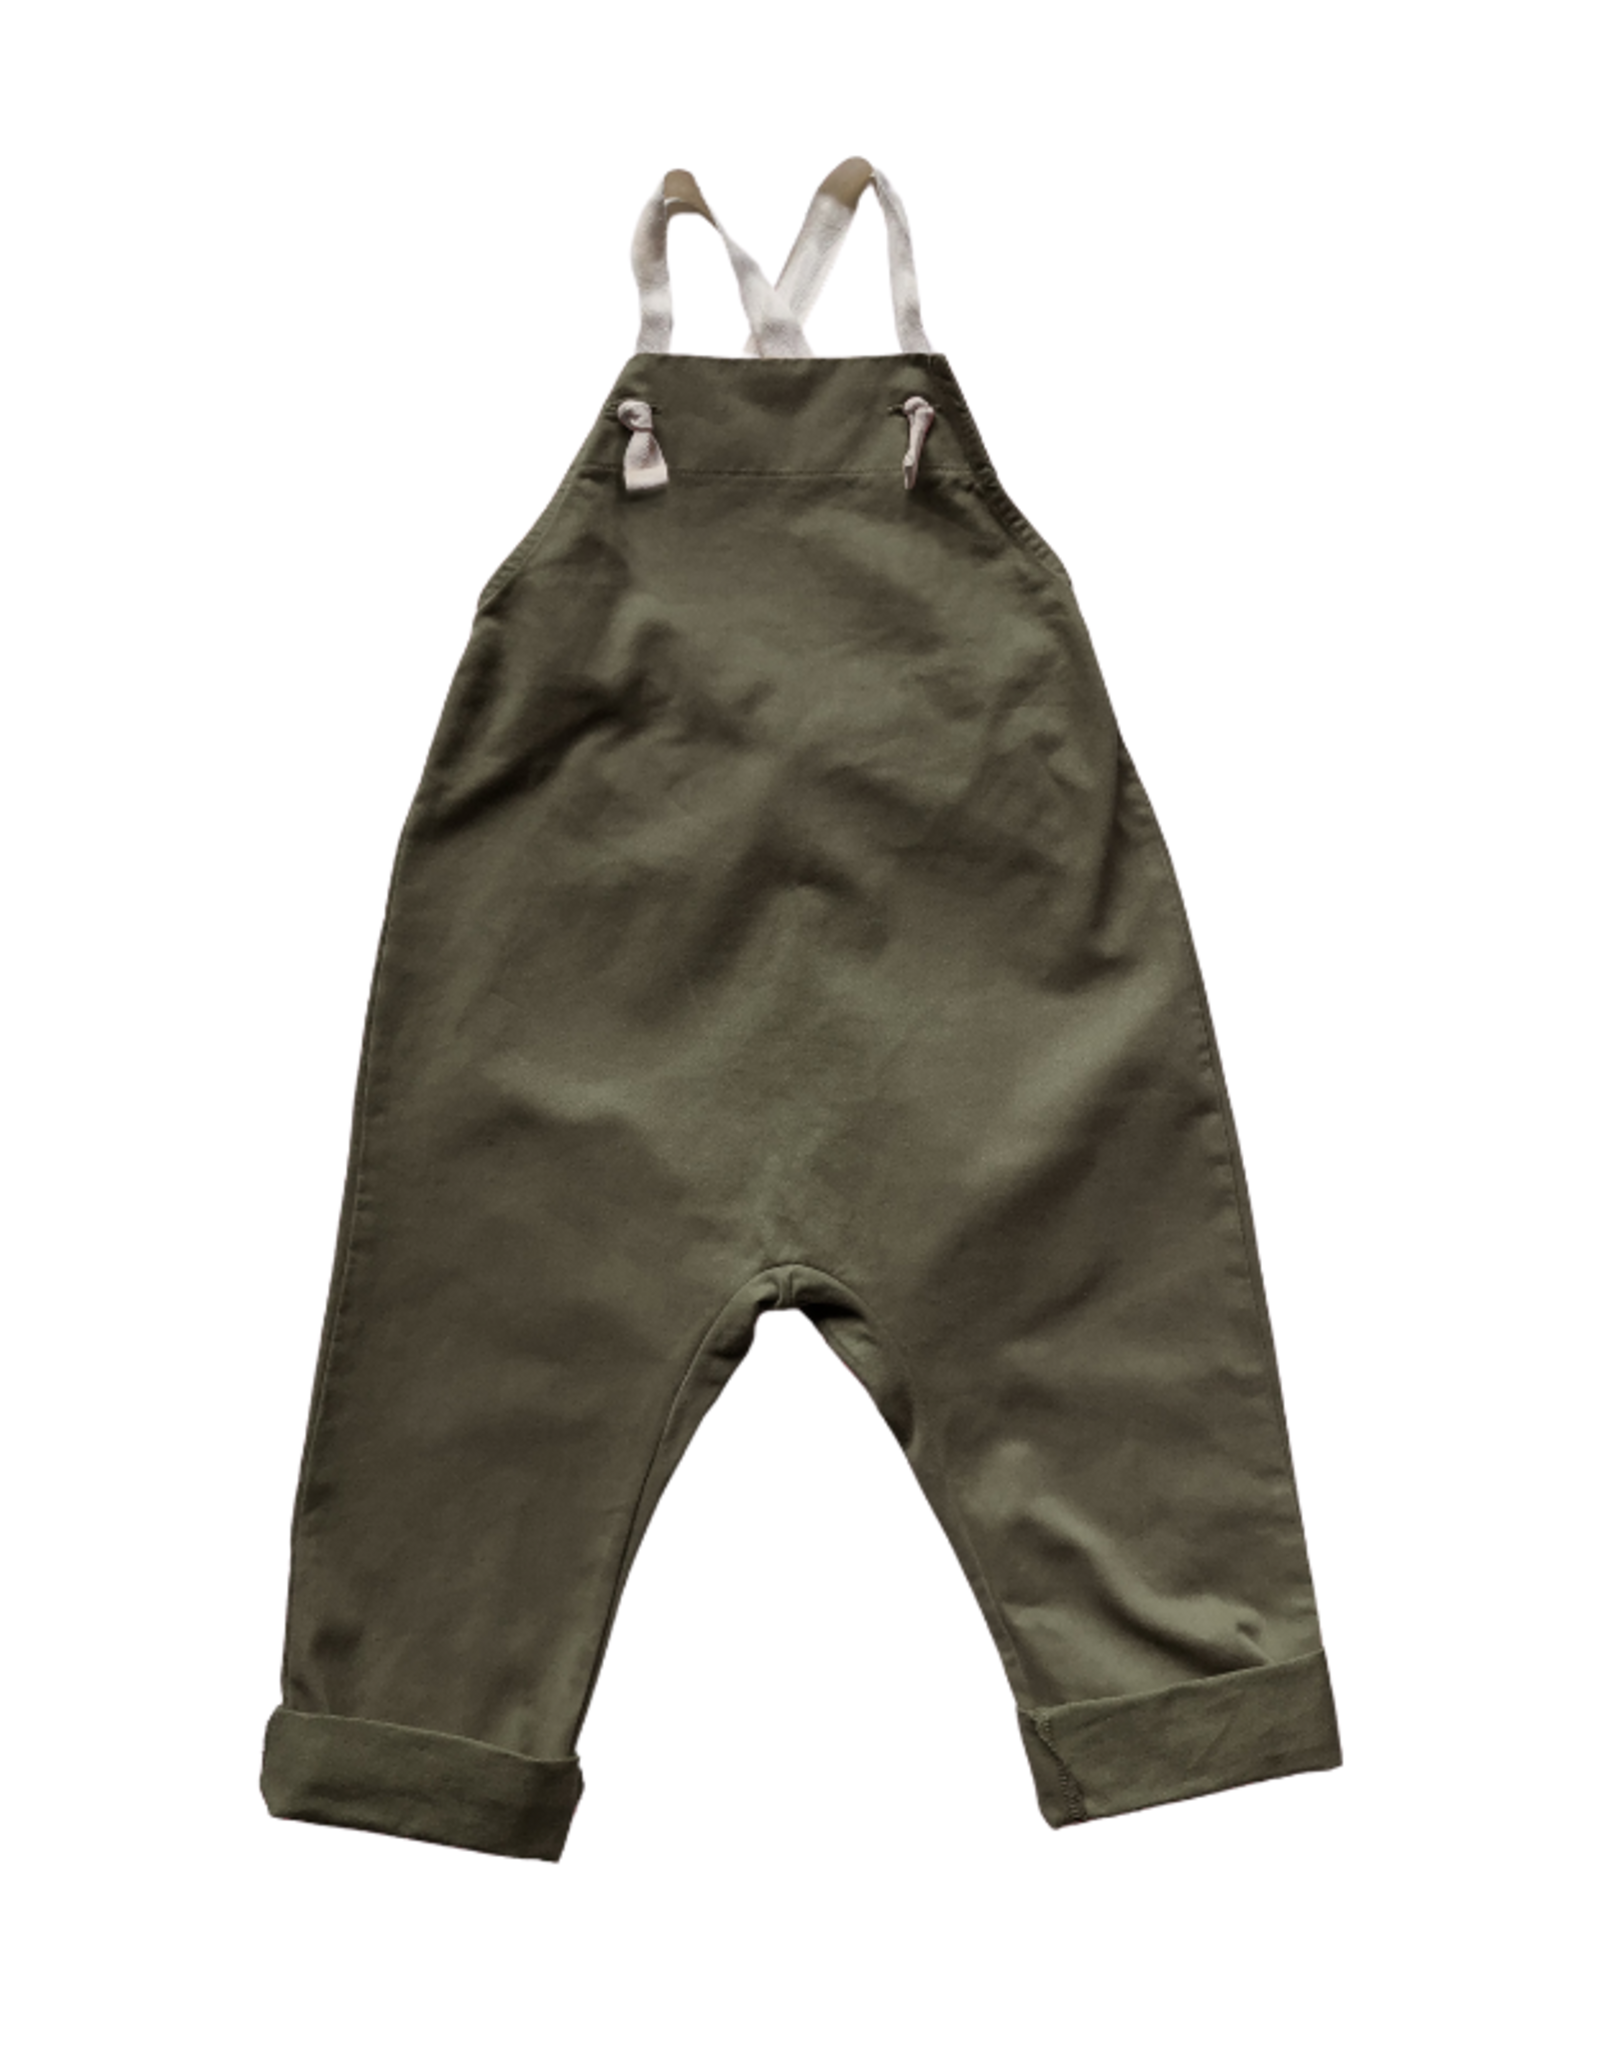 The Simple Folk The Workman Overall - Olive